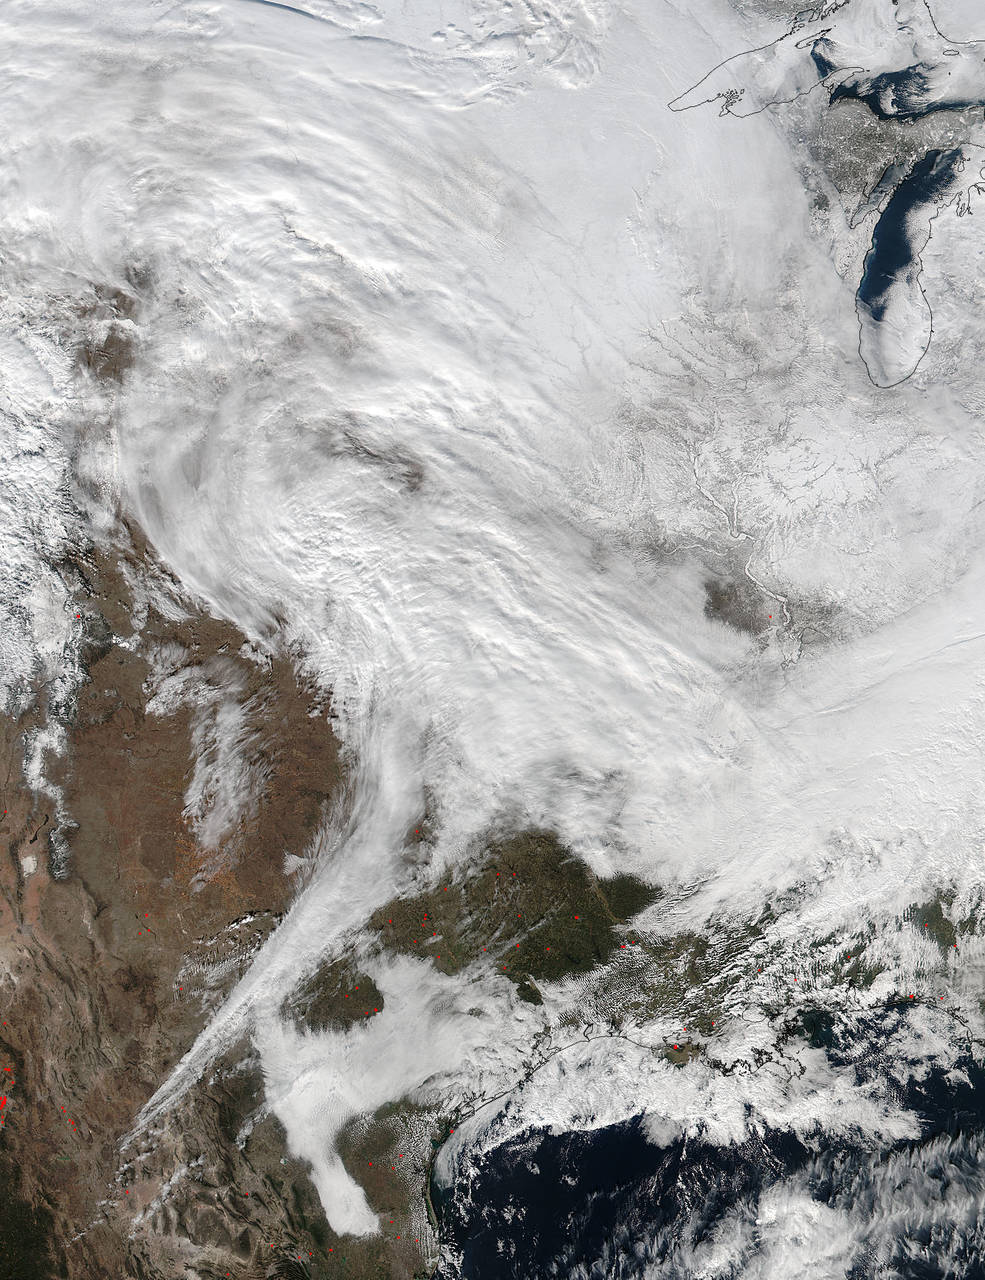 Winter storm moving through the central US